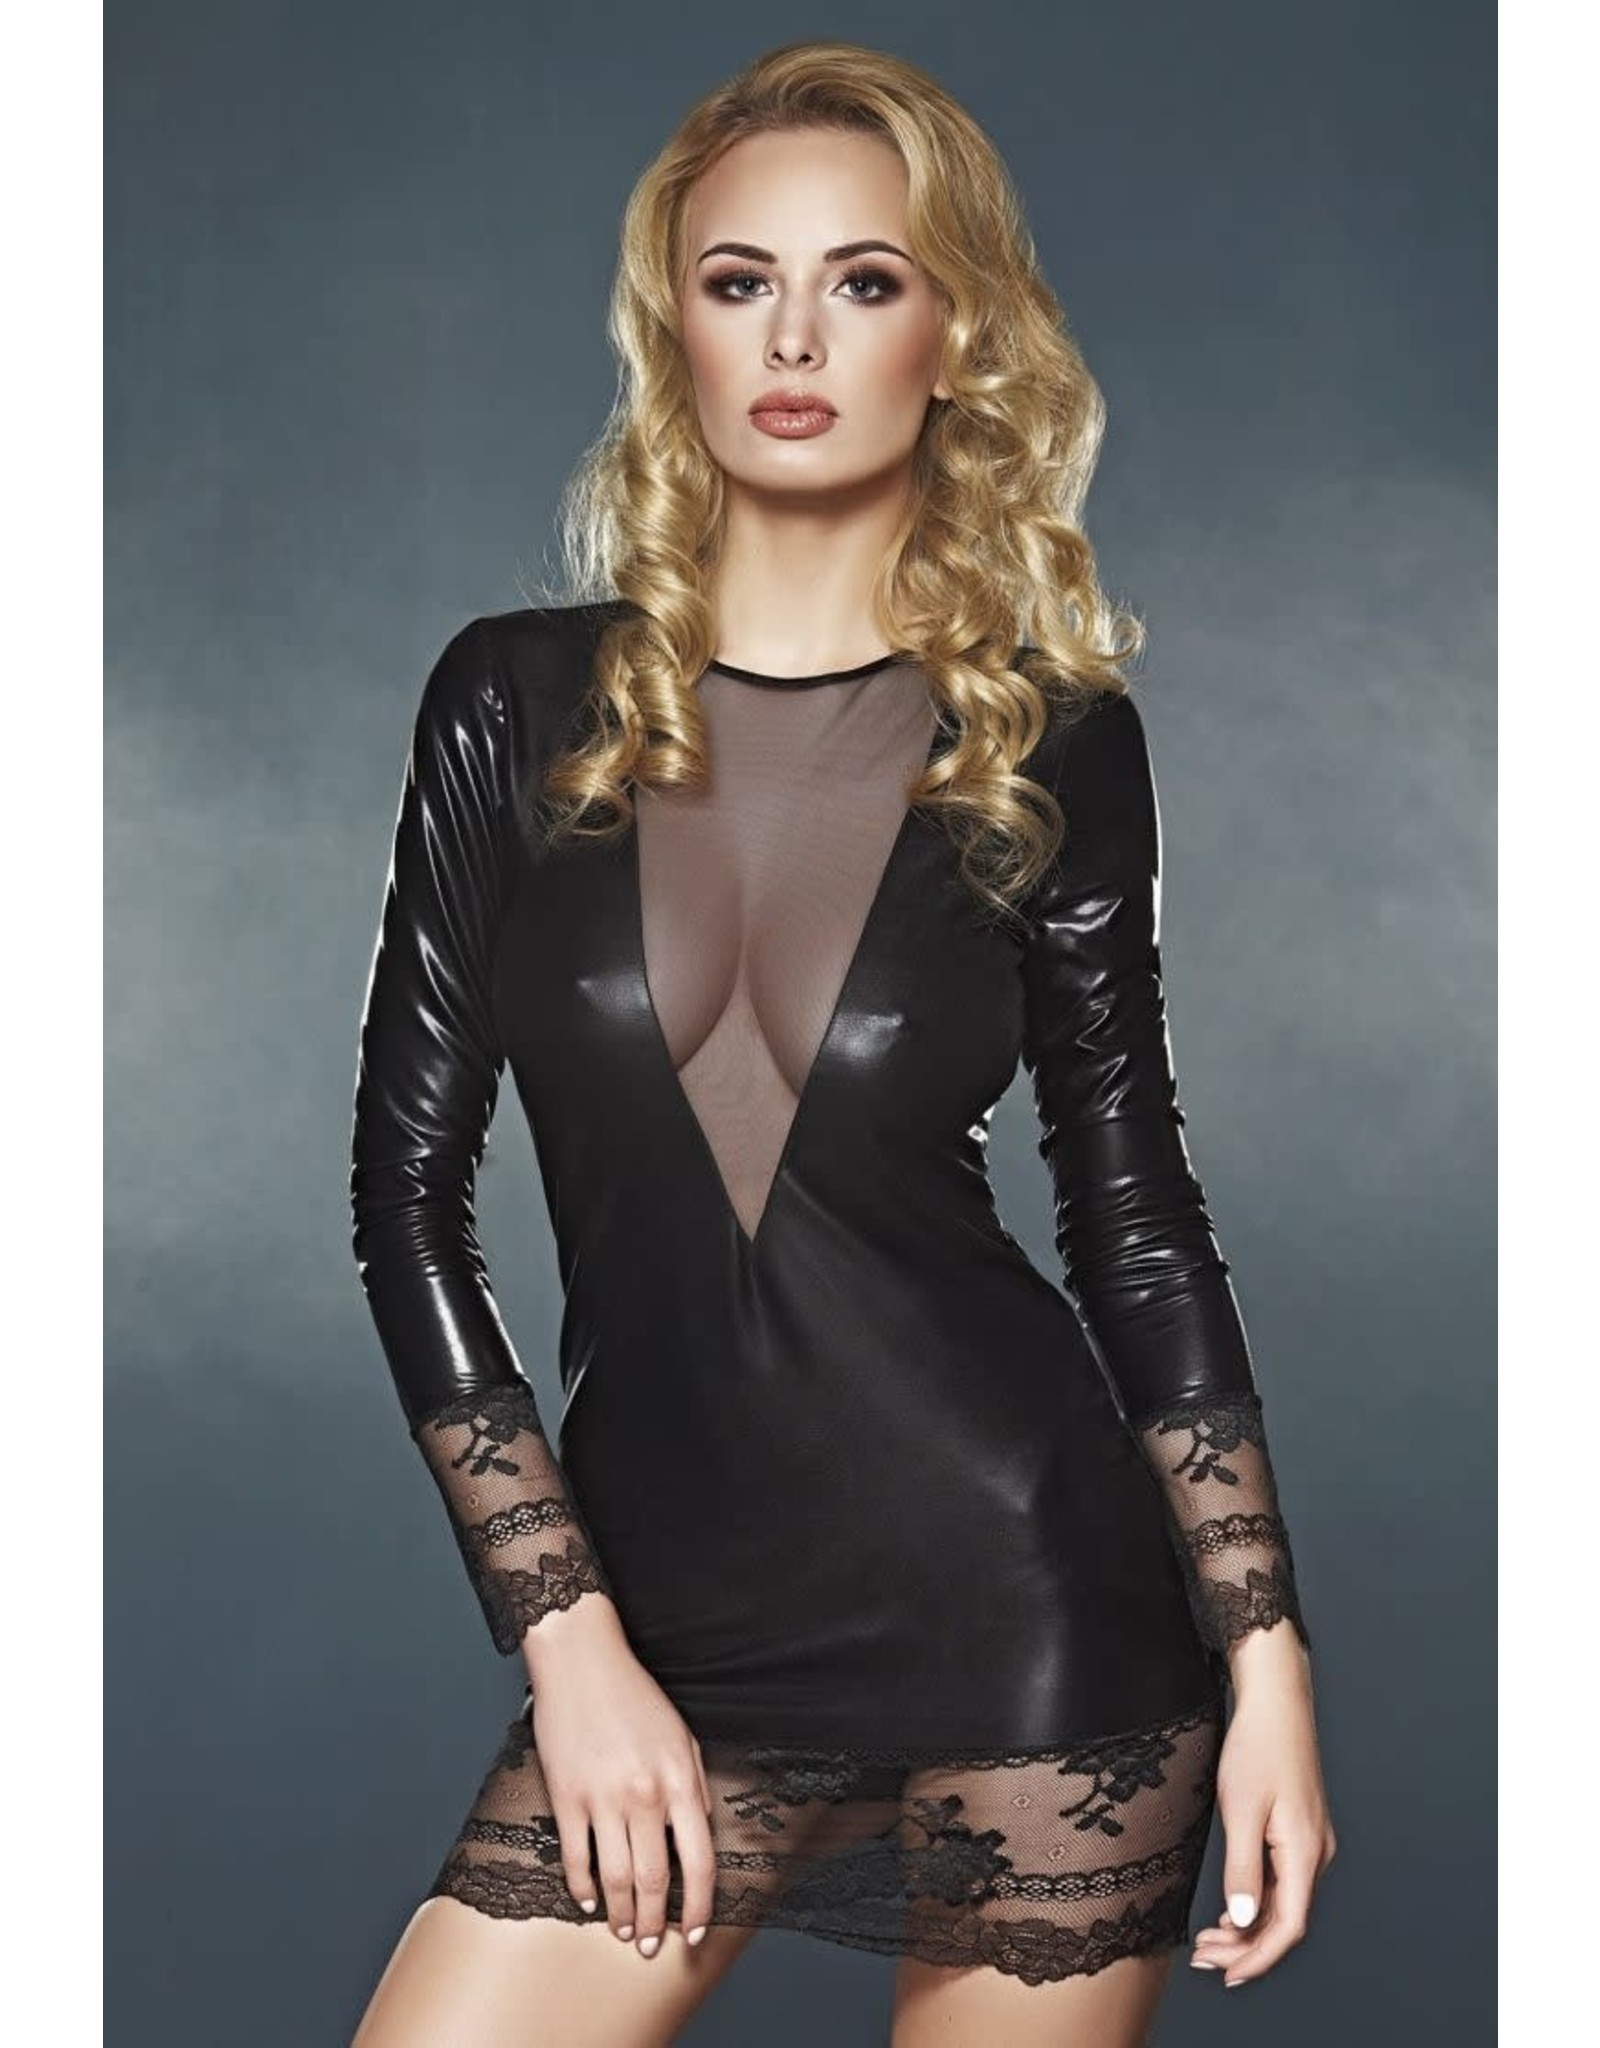 7 HEAVEN - ELEGANT LONG SLEEVE WET LOOK DRESS WITH LACE AND TULLE DETAILS - MEDIUM